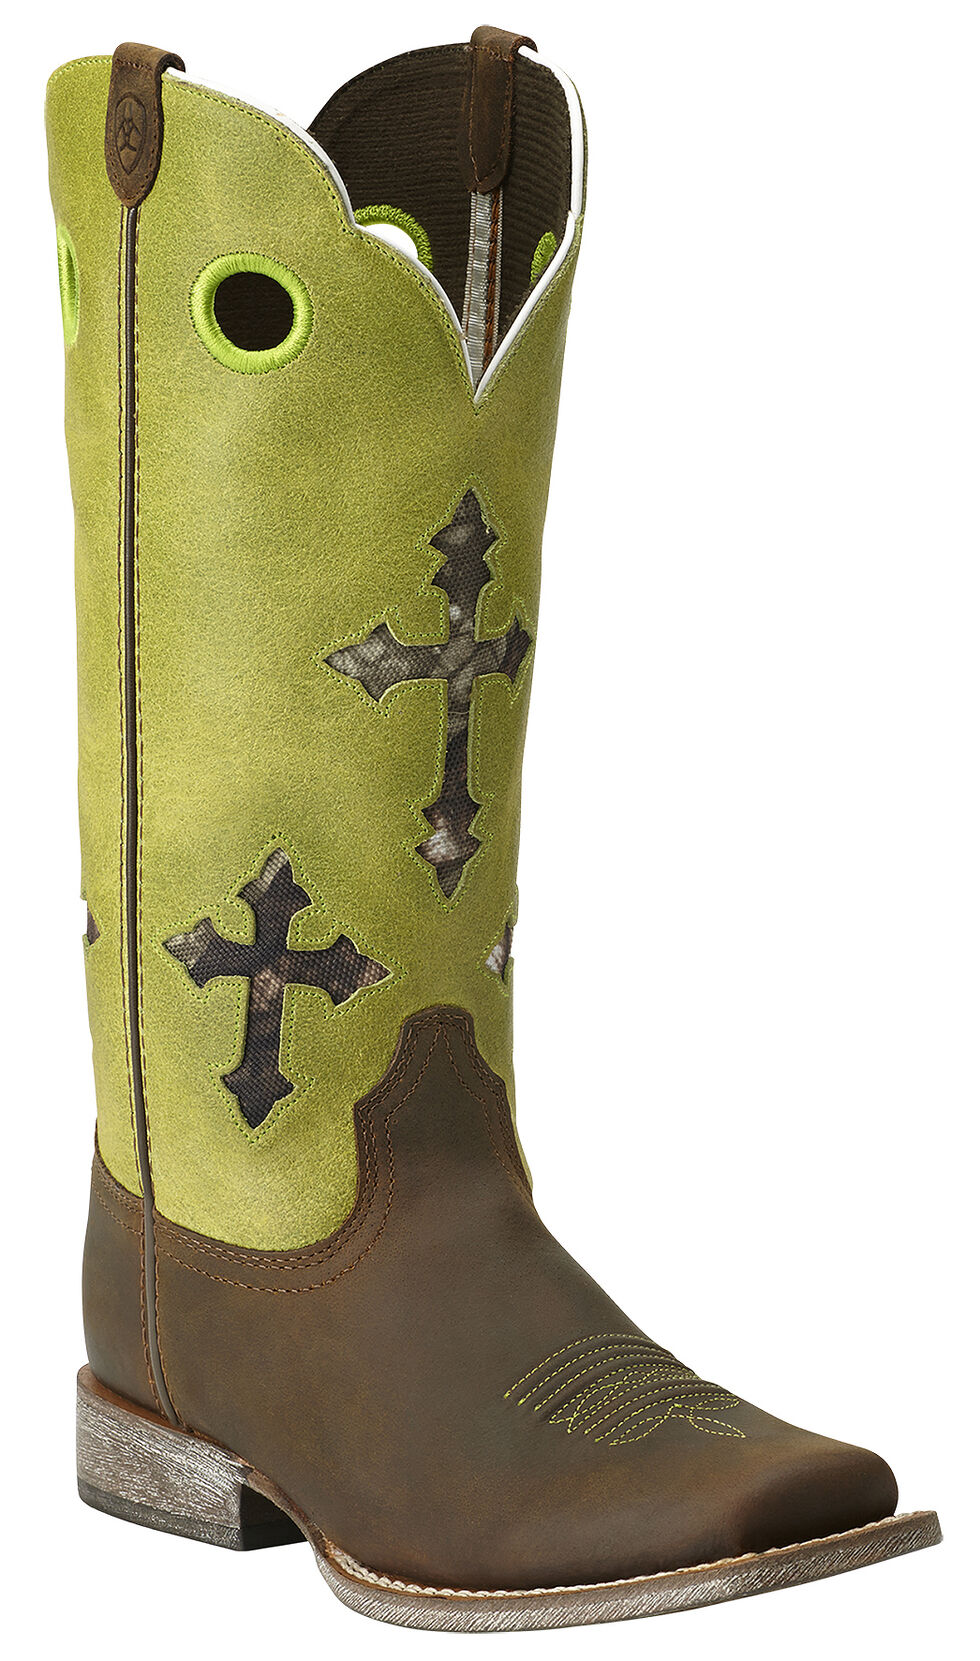 Ariat Girls' Ranchero Cross Cowgirl Boots - Square Toe, Brown, hi-res